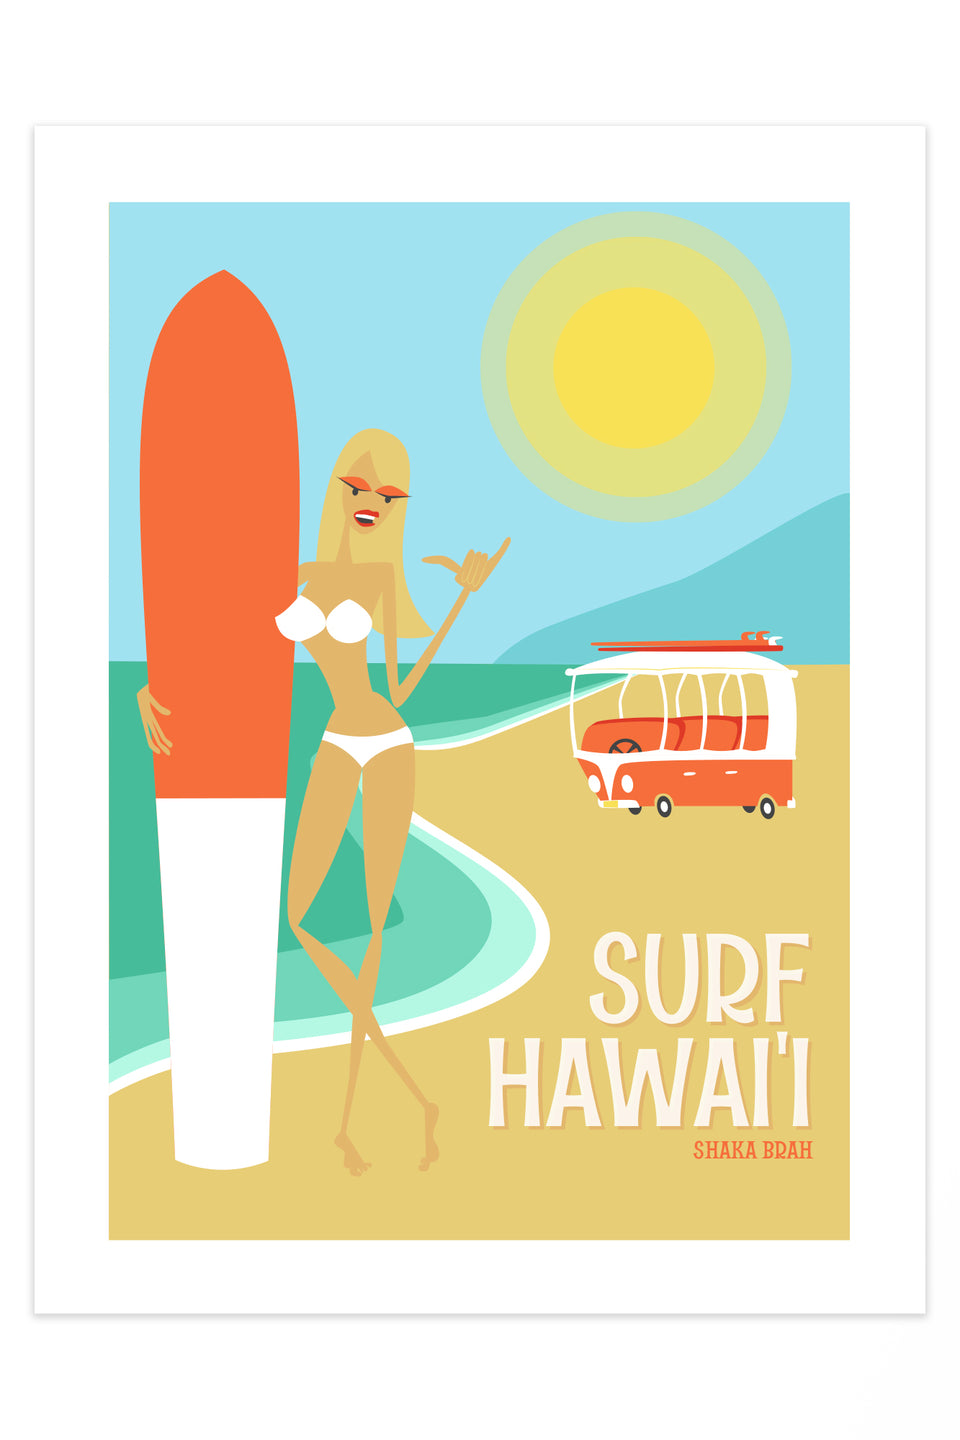 Surf Hawaii (Retro Hawaii Travel Poster)